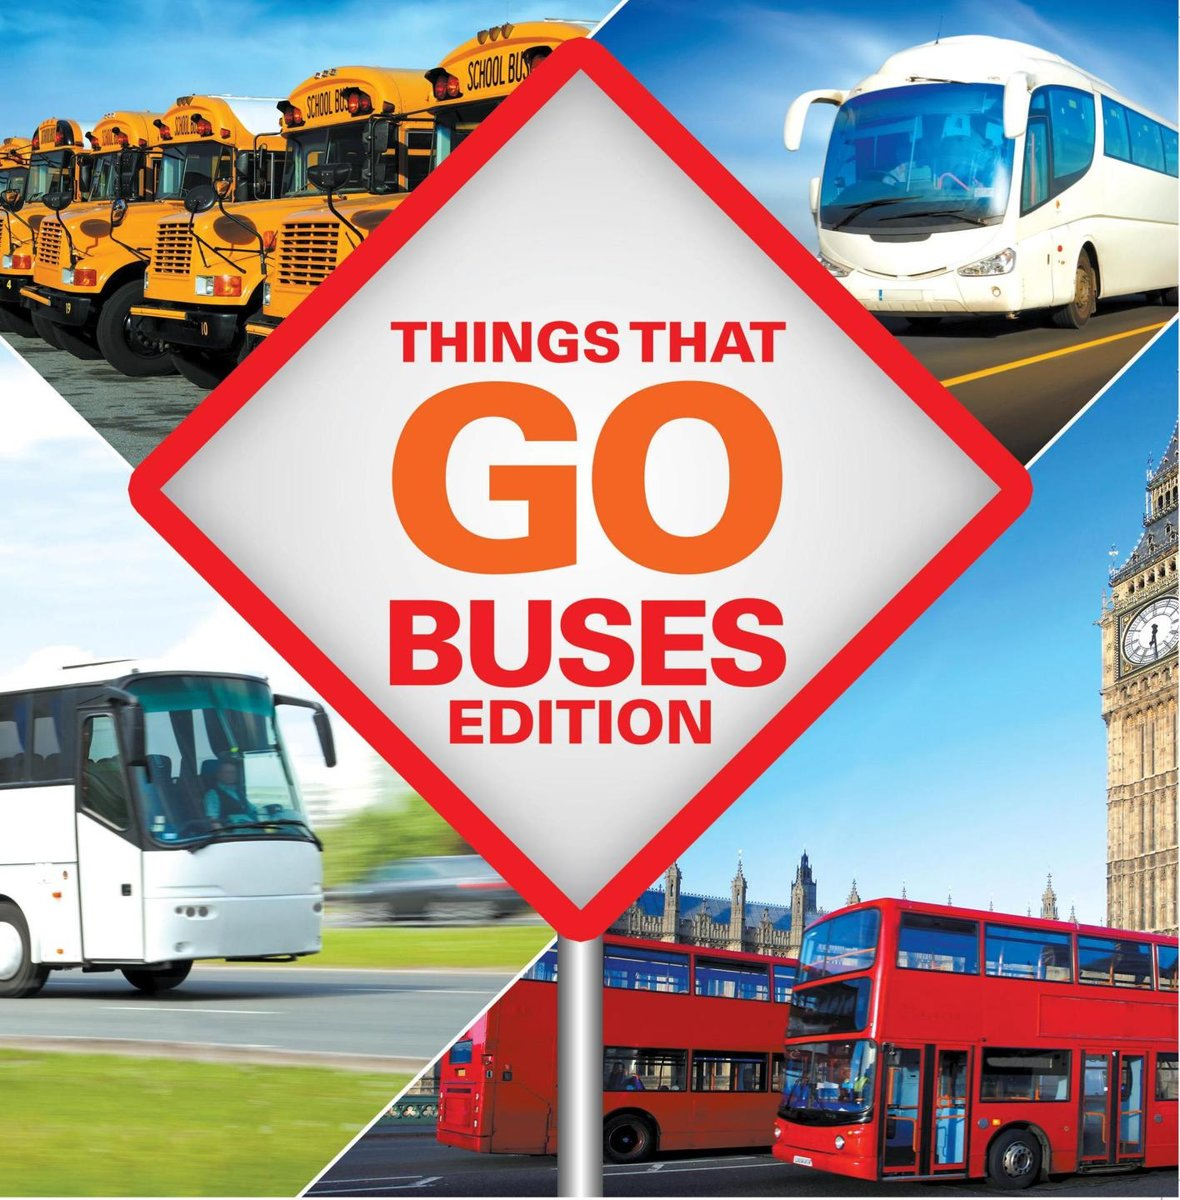 Things That Go - Buses Edition